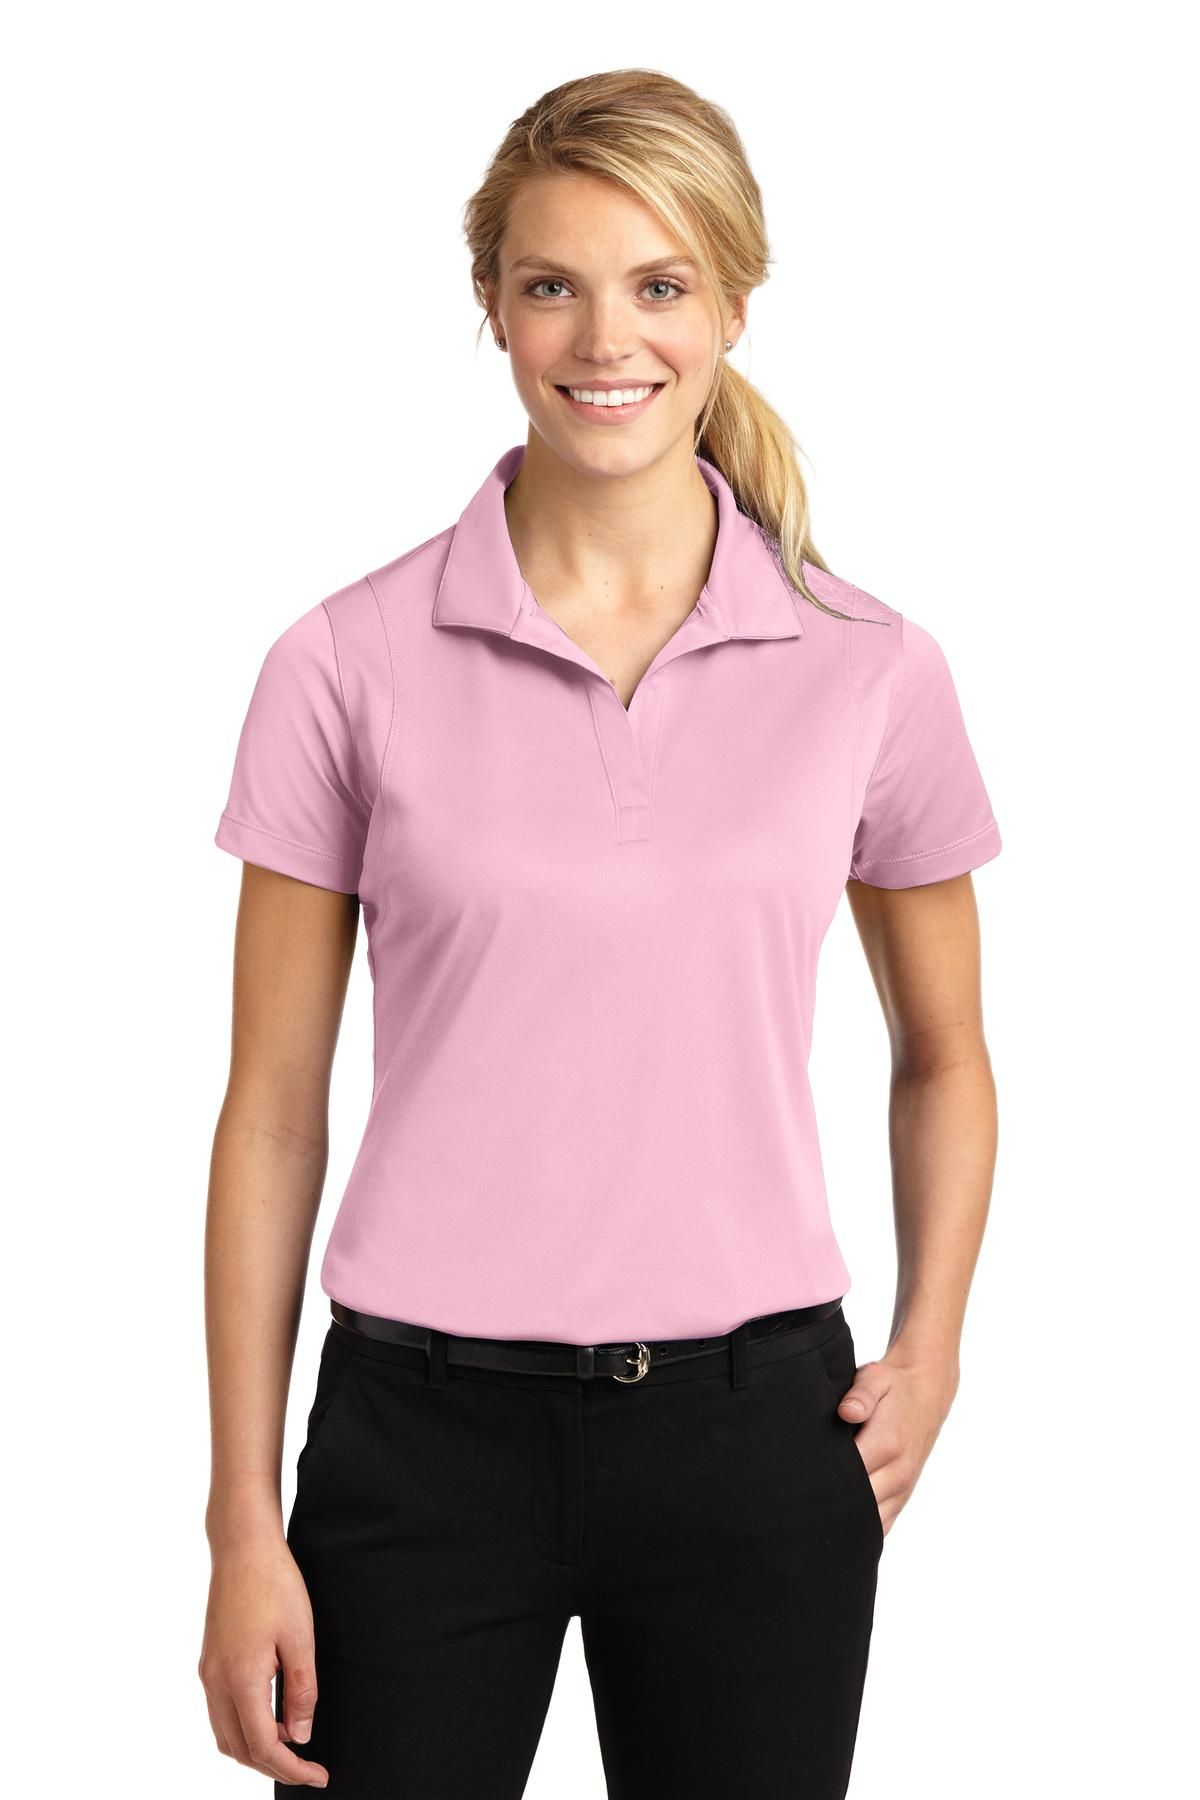 Sport-Tek ®  Ladies Micropique Sport-Wick ®  Polo. LST650 - Light Pink